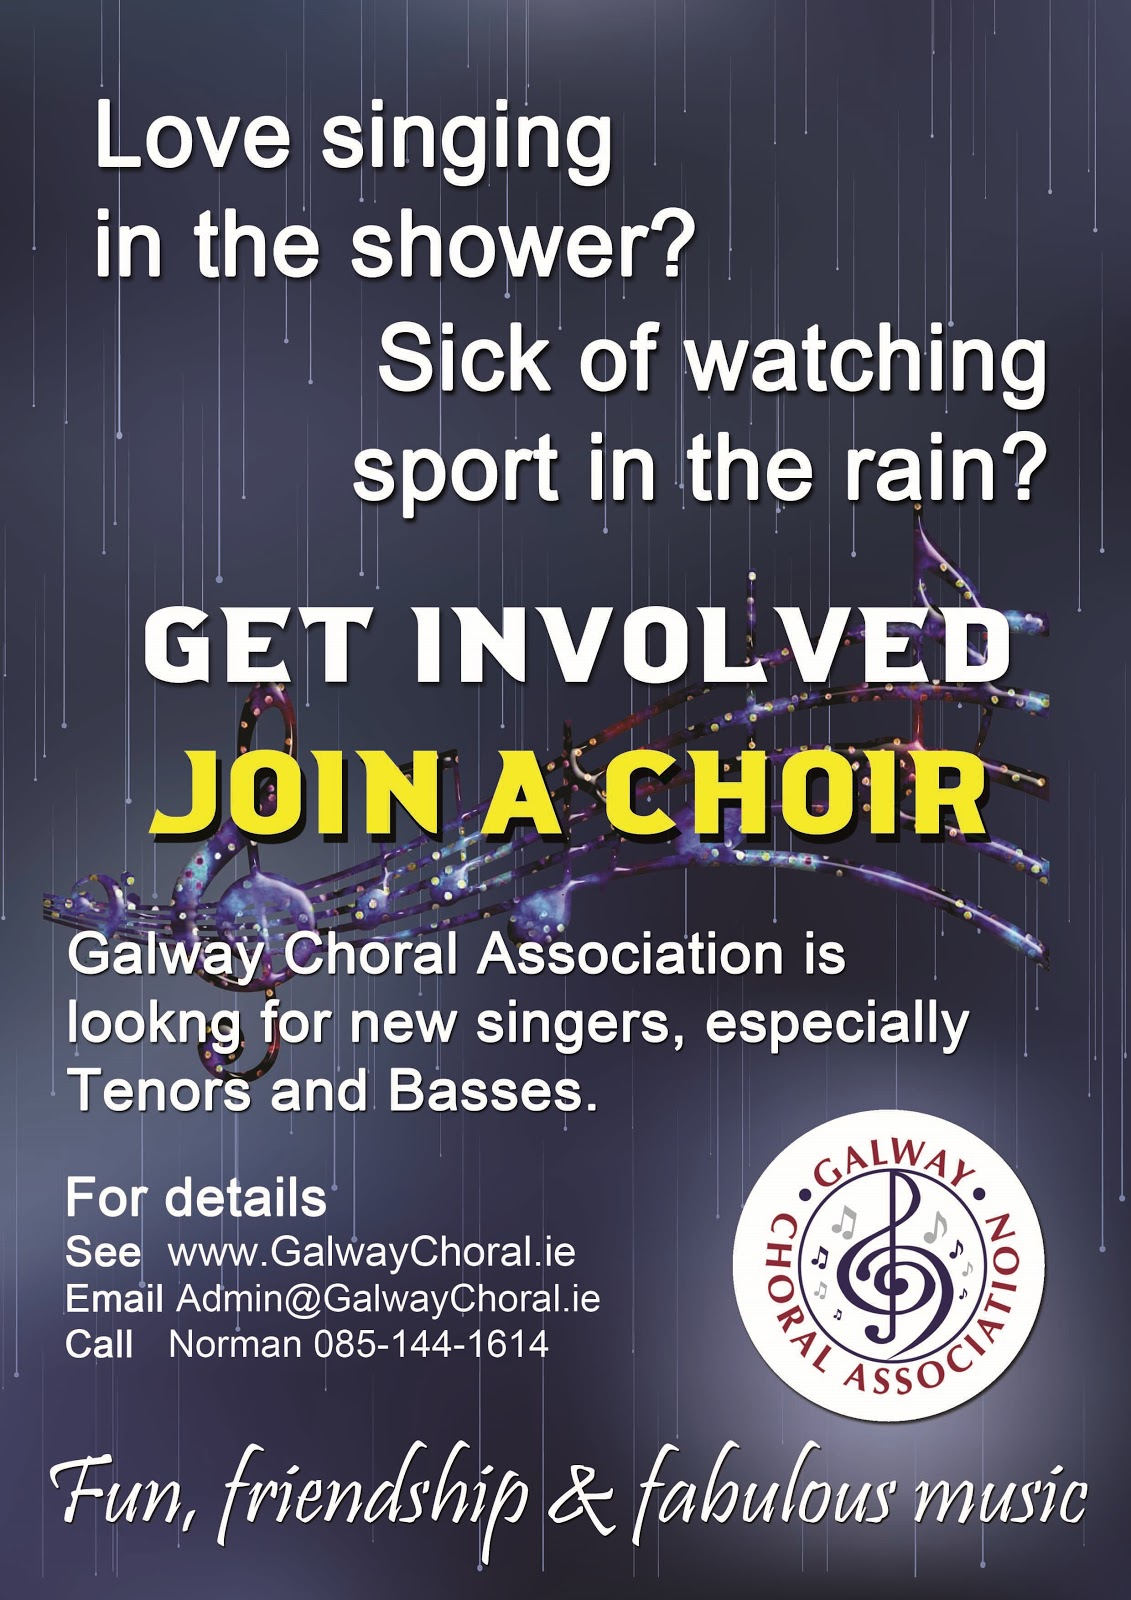 Love singing in the shower?  Sick of watching sport in the rain?  Get involved - join a choir.   Galway Choral Association is looking for members, September 2018.